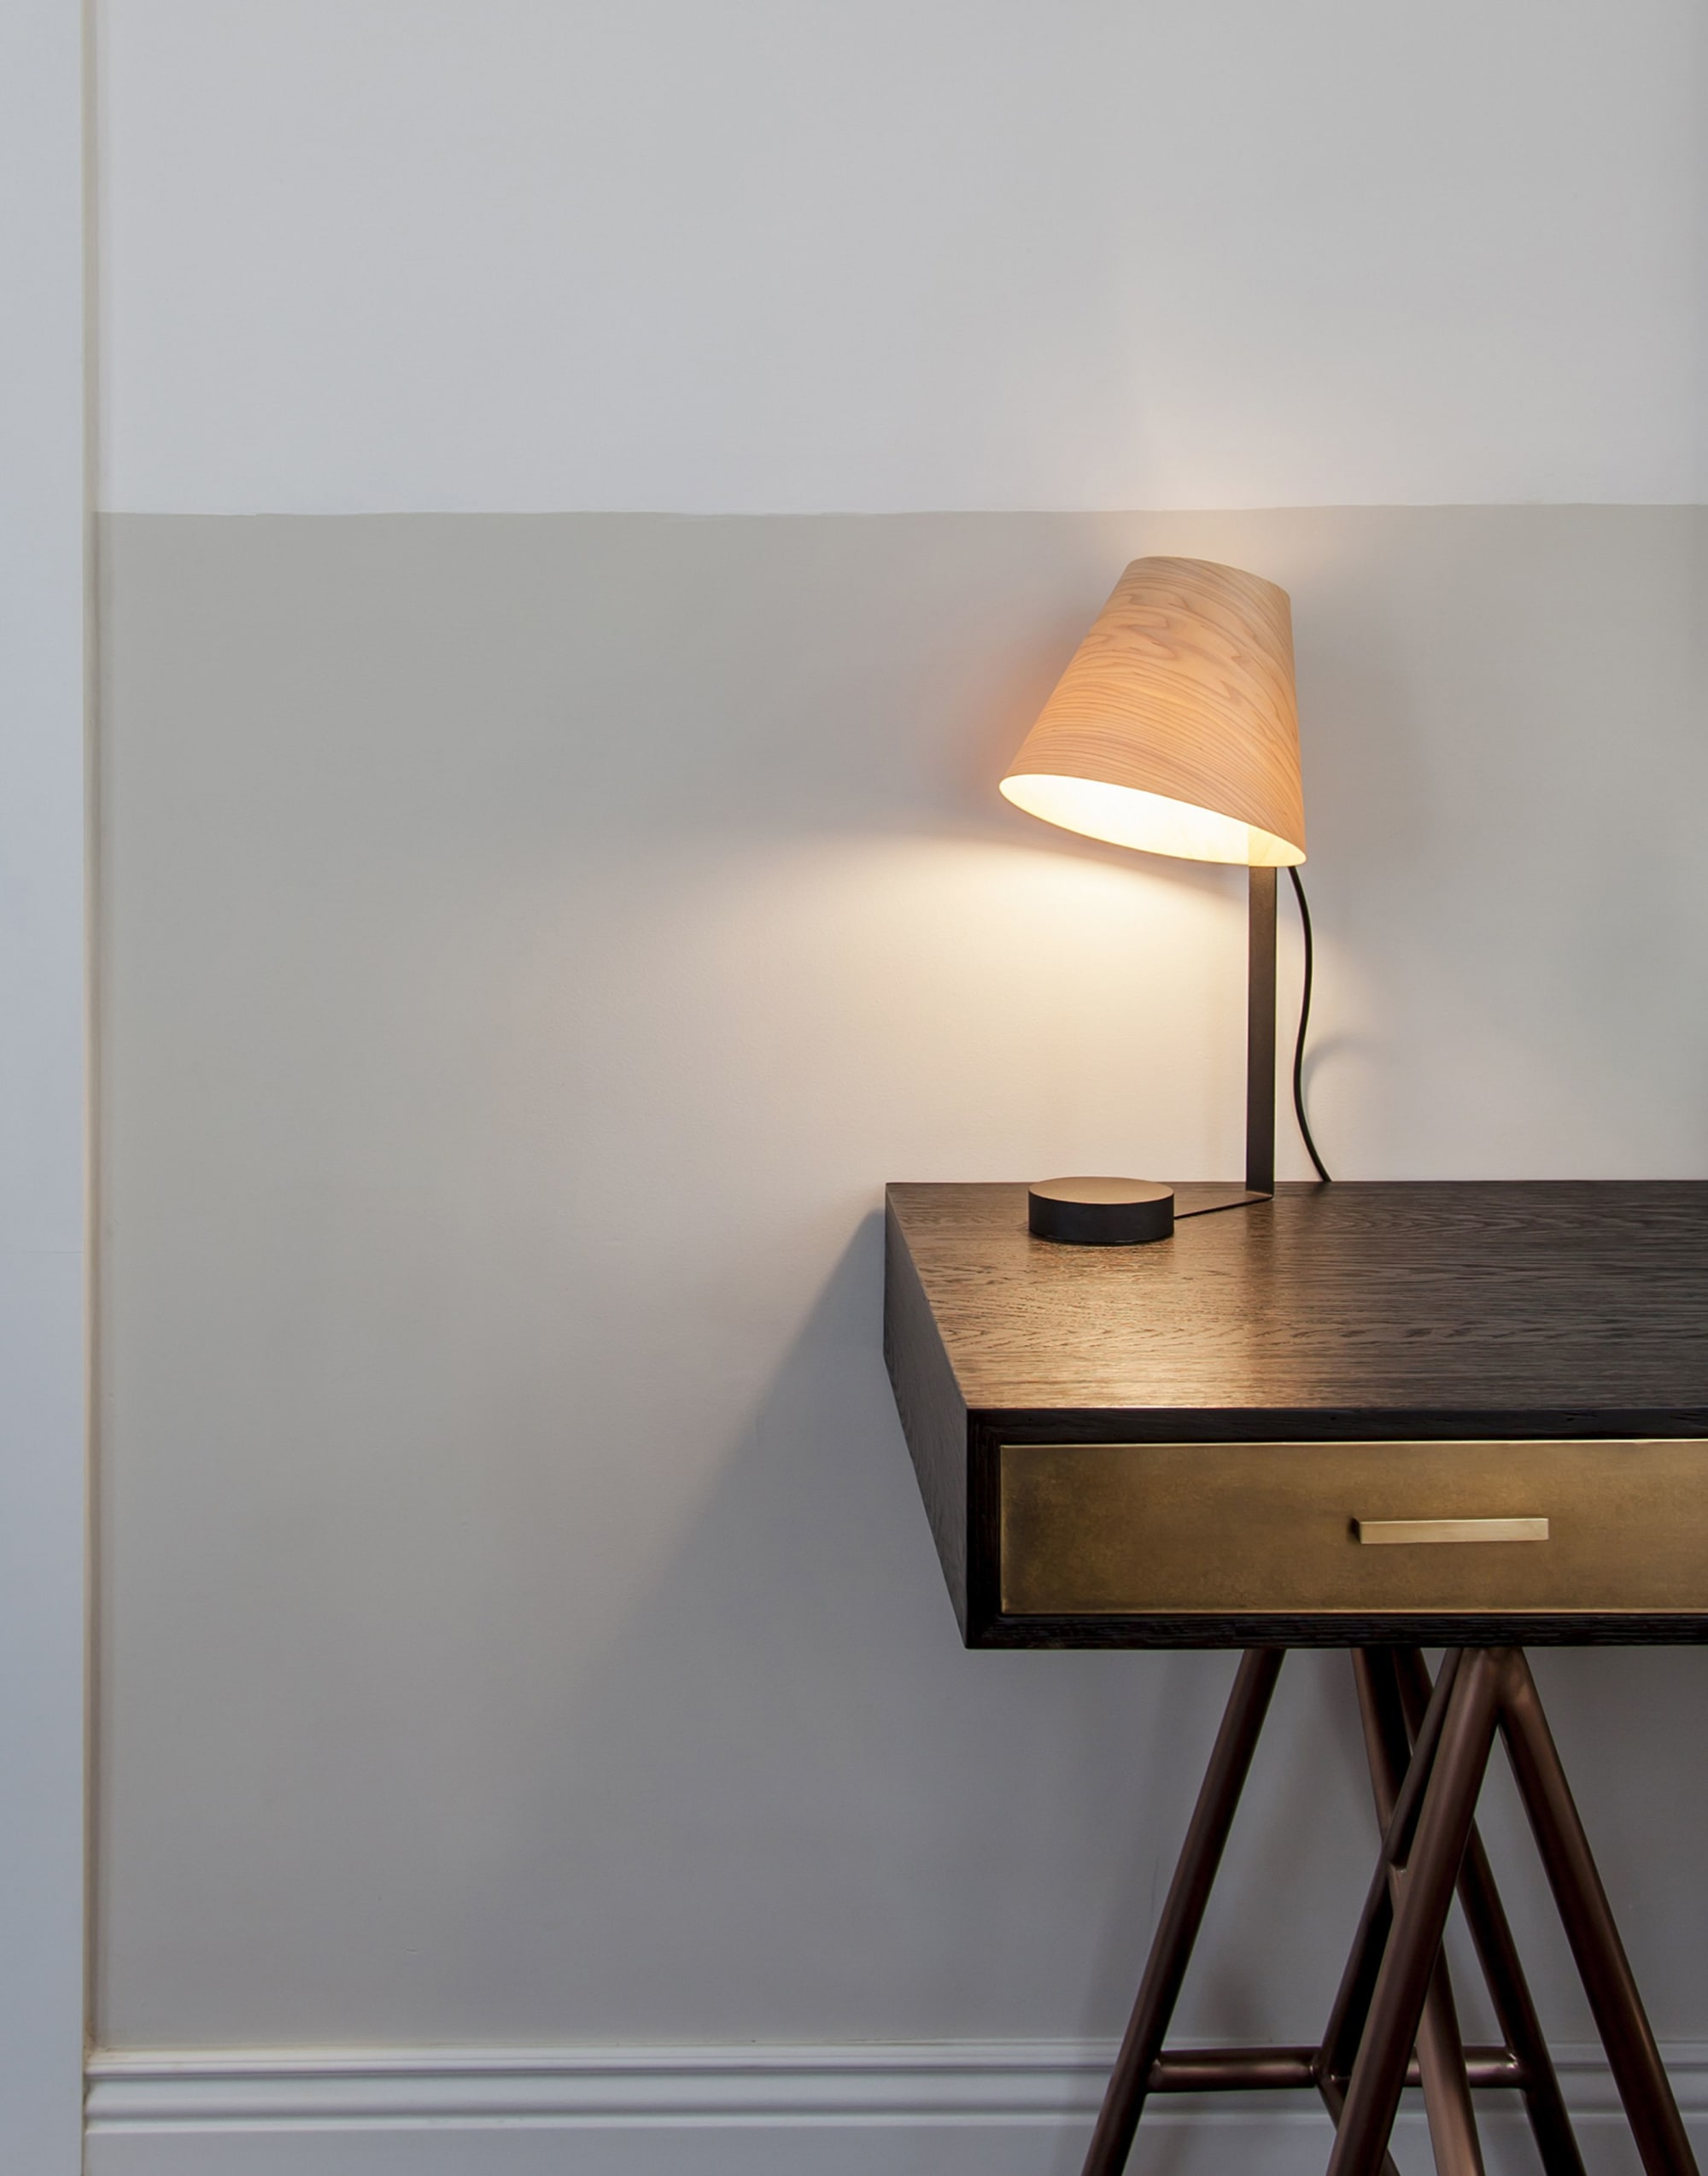 Lighting by Ariel Zuckerman Studio seen at Tel Aviv-Yafo, Tel Aviv-Yafo - Lighting for Hotel Nordoi